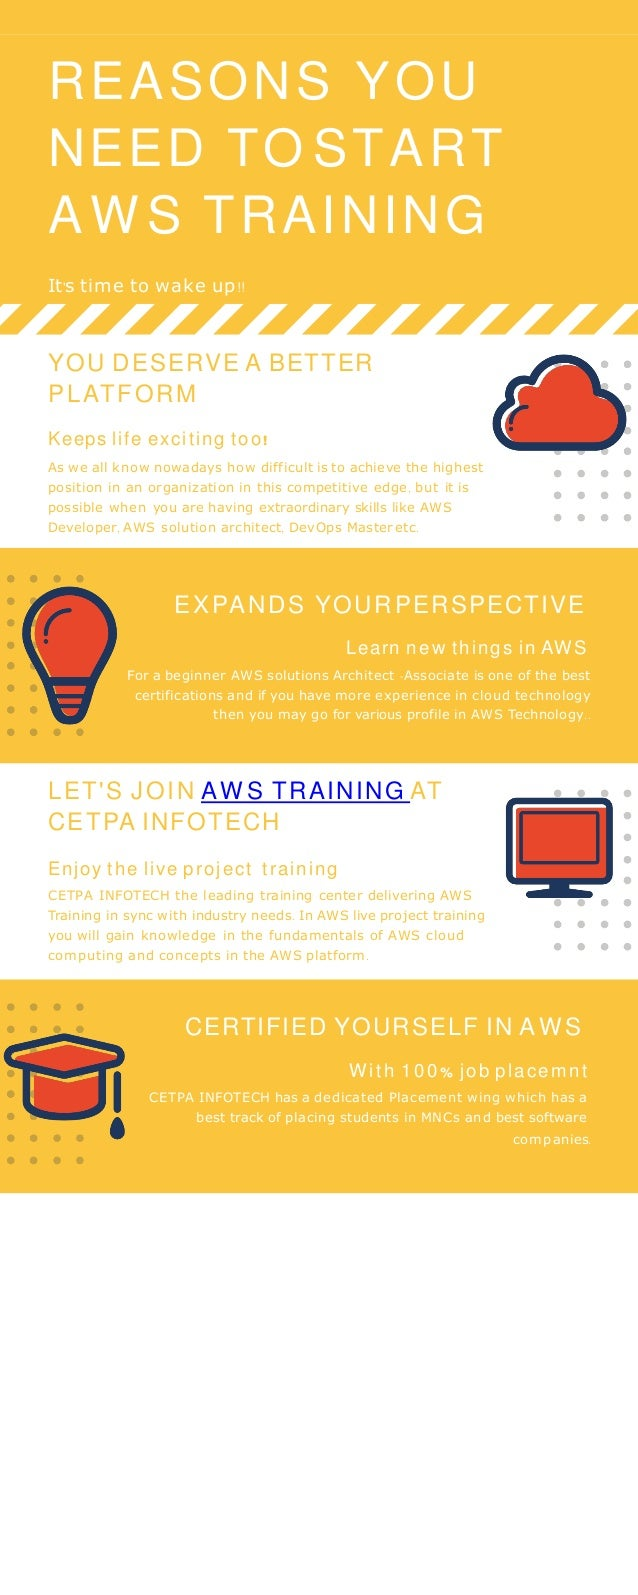 Reasons You Need to Start AWS Training